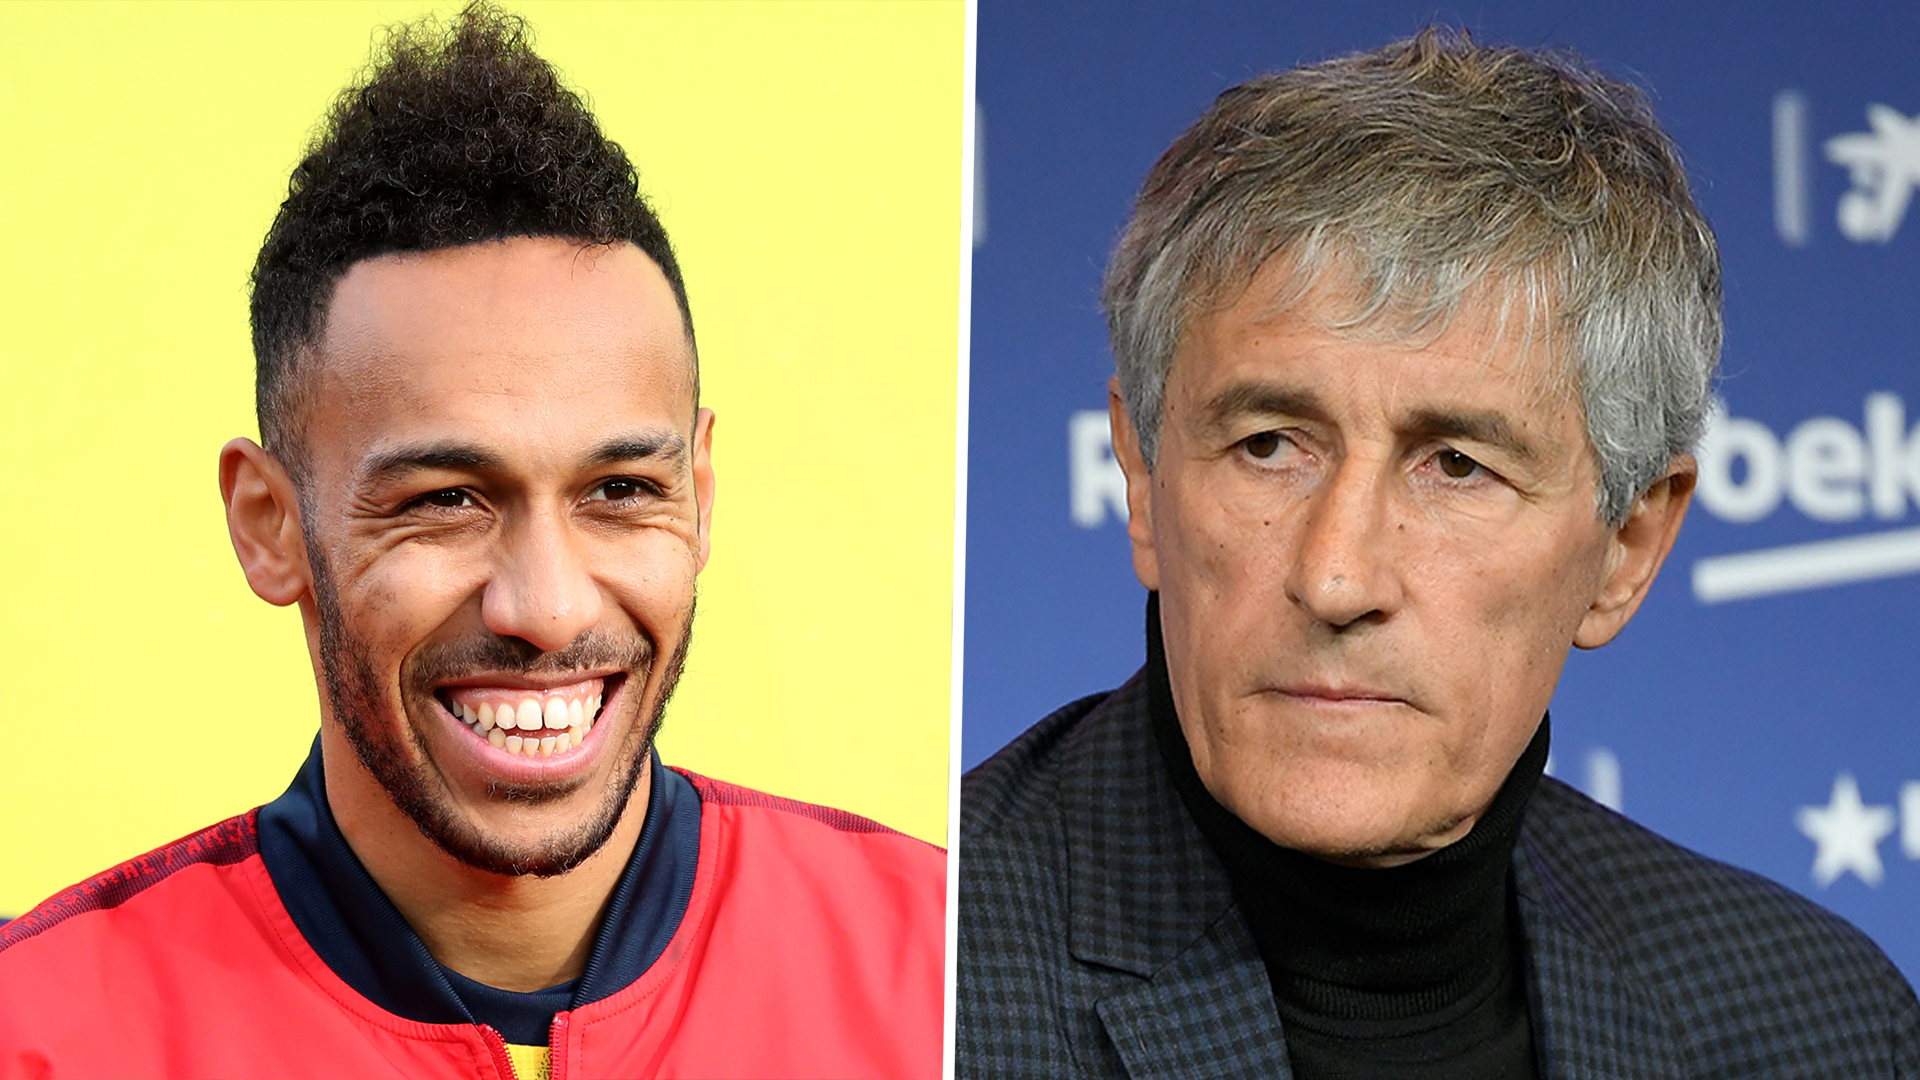 Setien confirms Barca are looking for a striker amid Aubameyang links